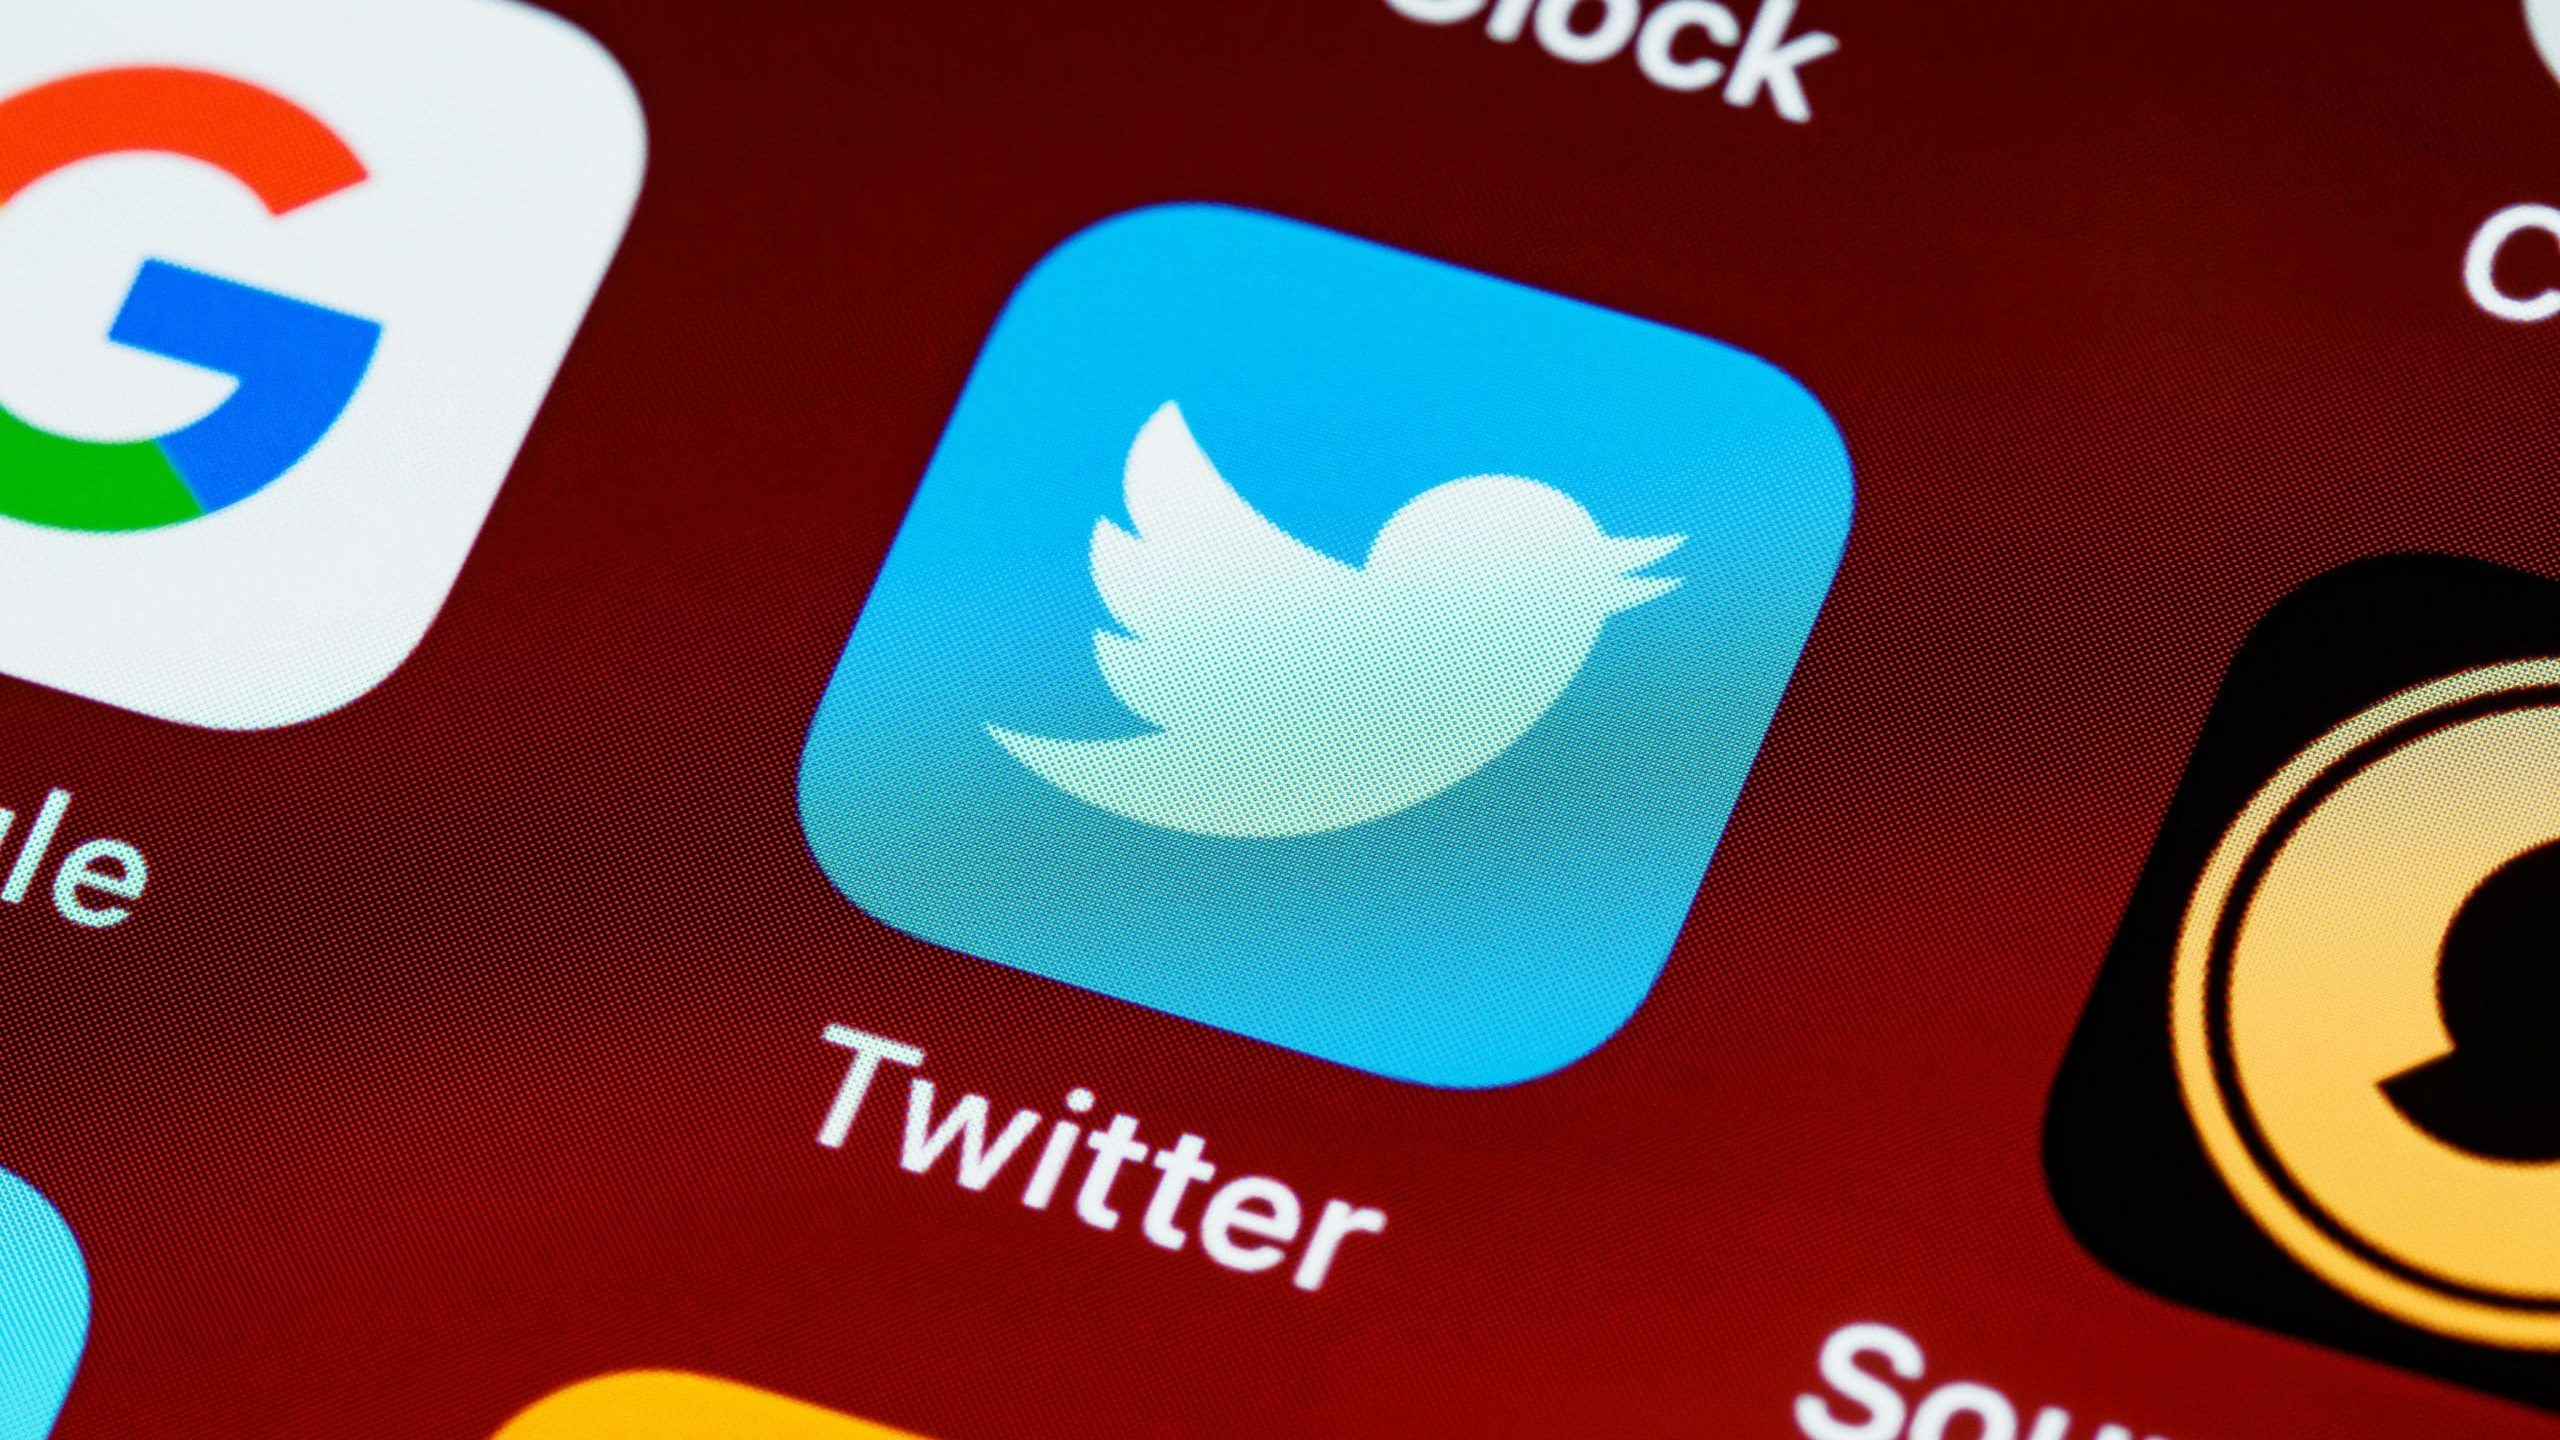 Twitter Rolls Out Absurd New Feature to Report Tweets that 'Seem Misleading'